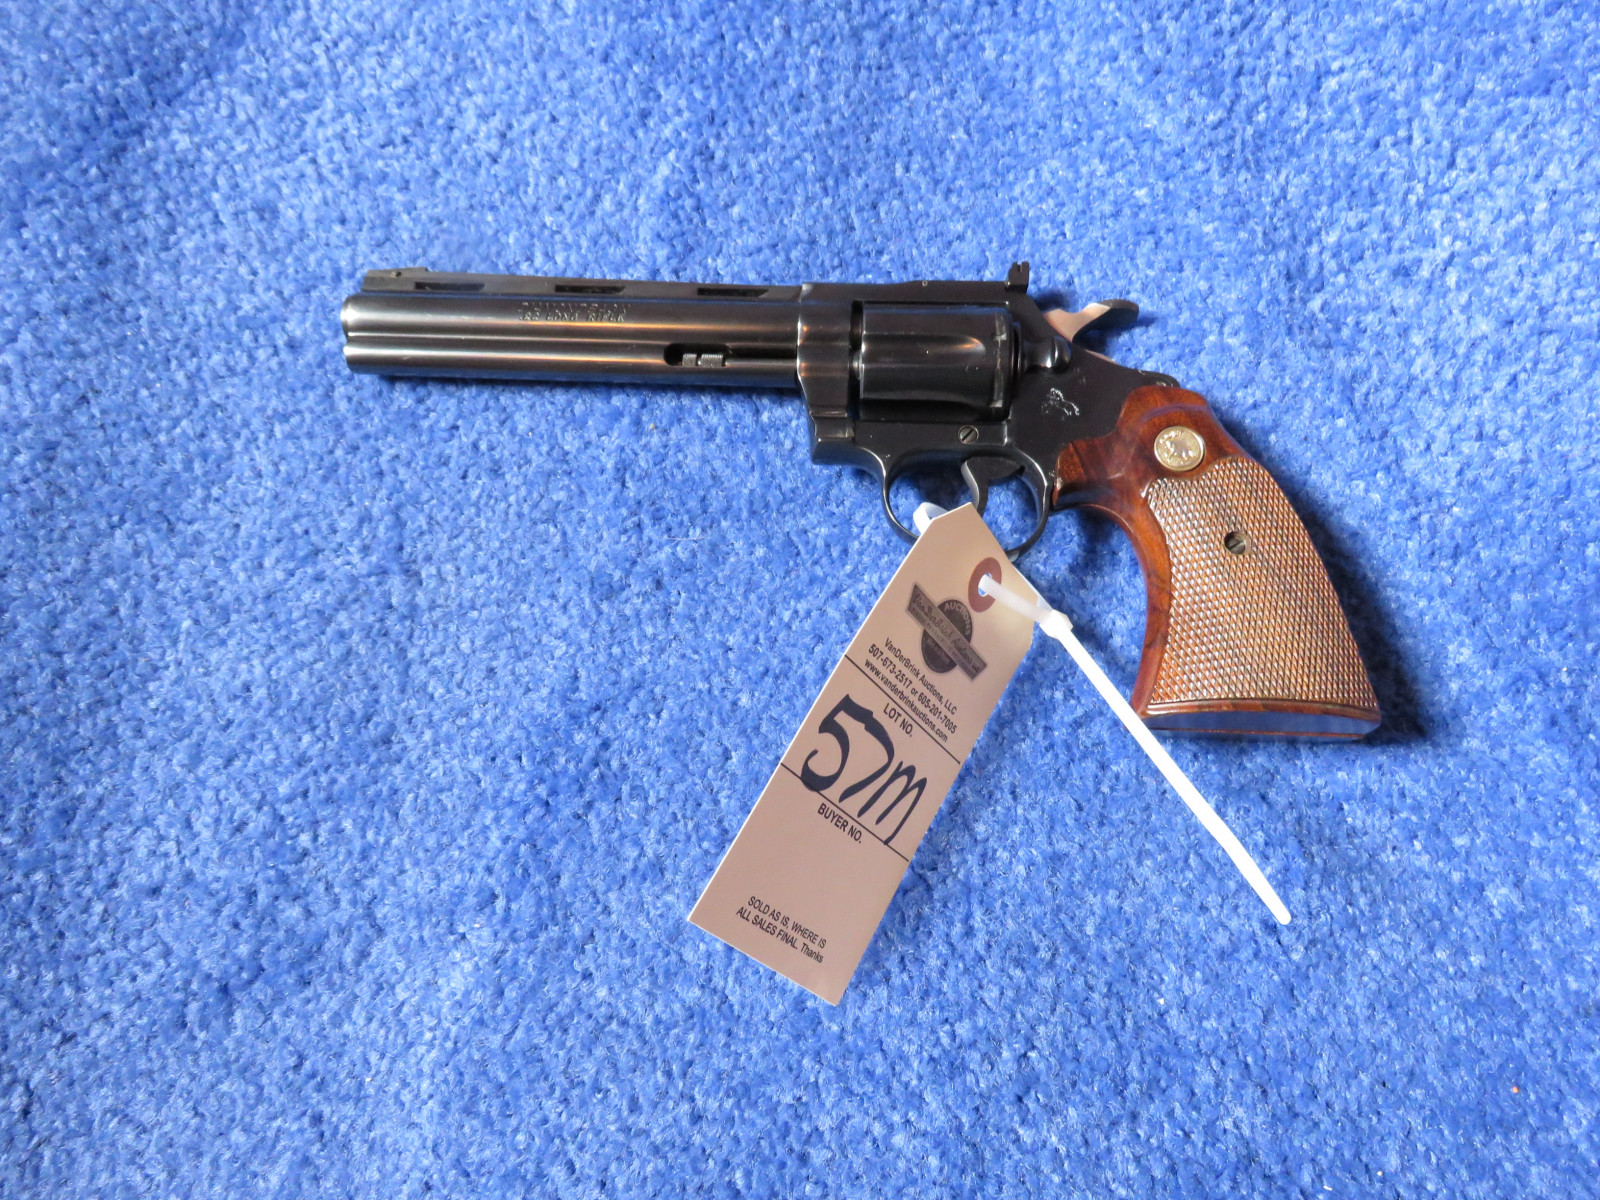 Colt Diamond Back .22 Revolver - Image 1